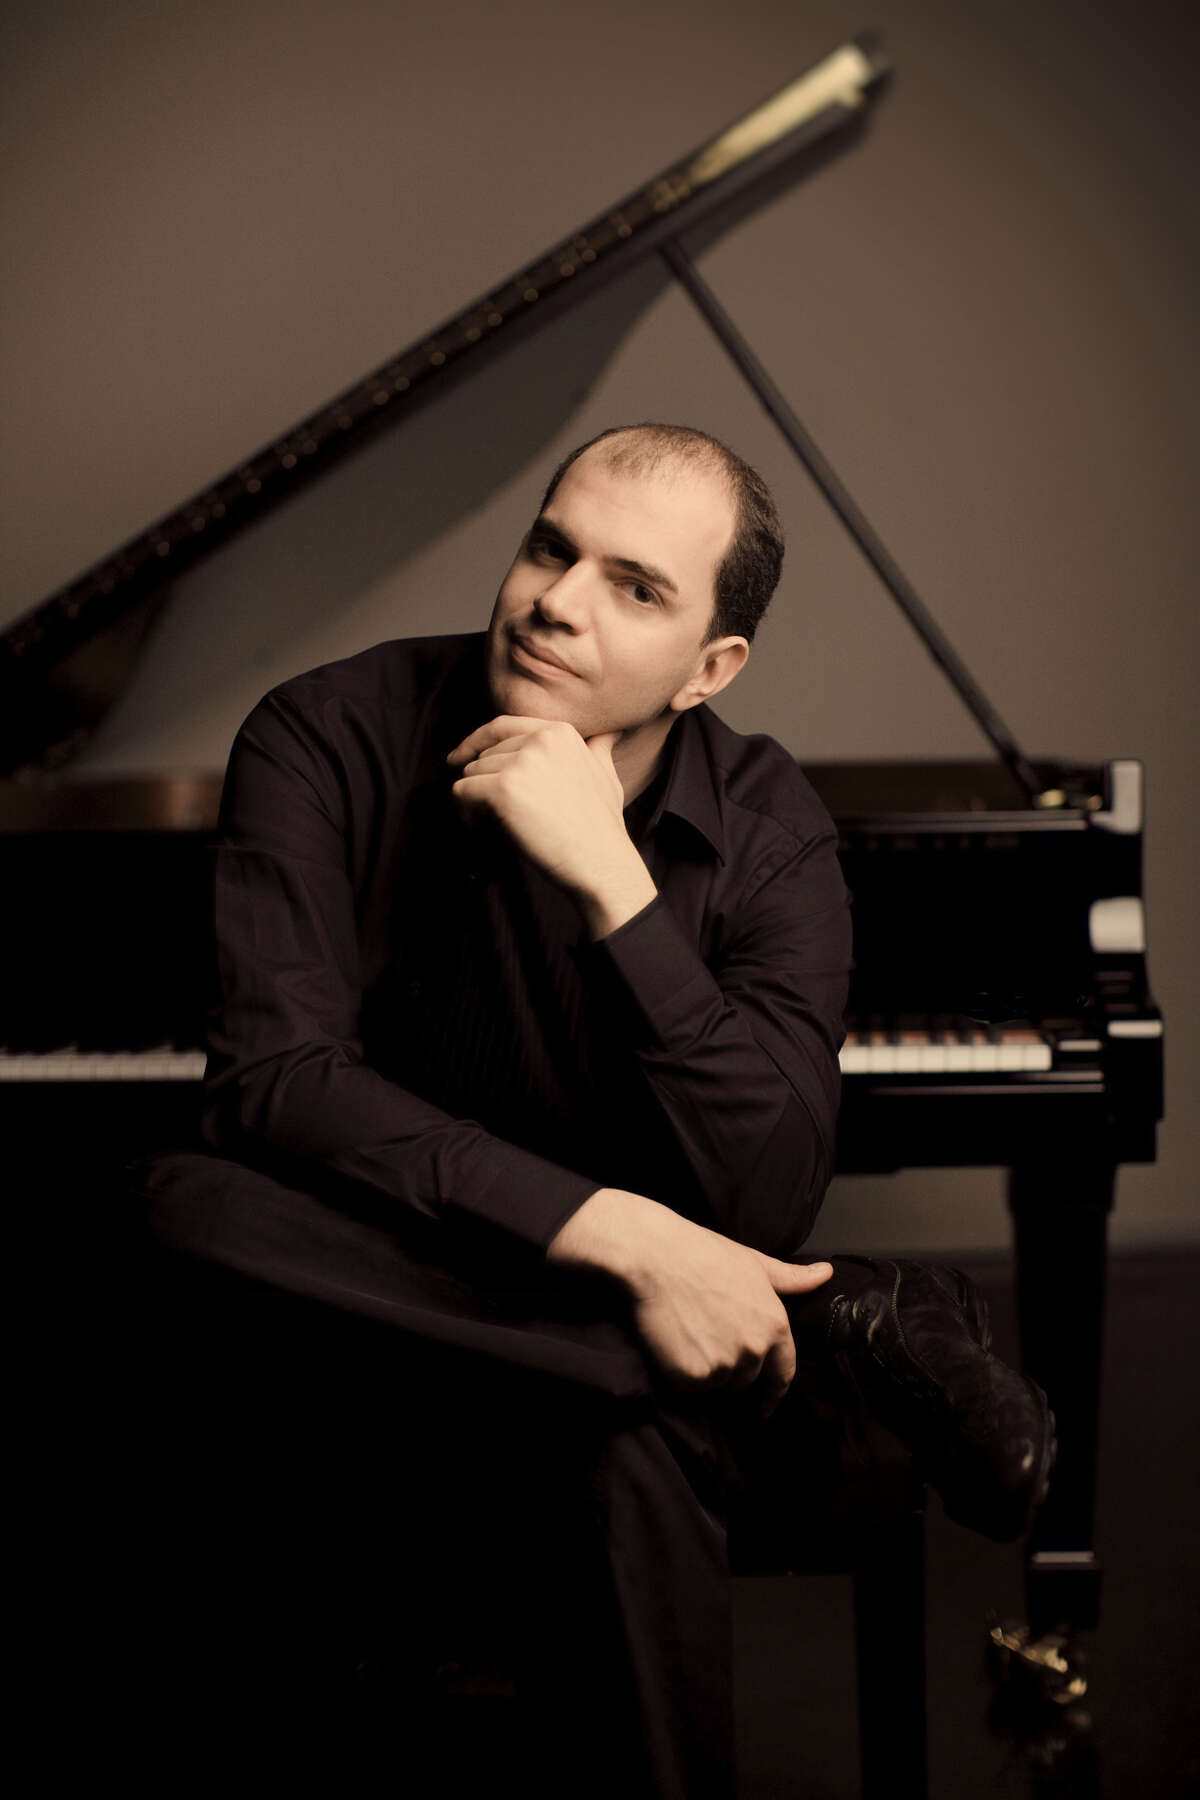 Pianist Kirill Gerstein plays Tchaikovsky's Piano Concerto No. 1 with the Houston Symphony on Sept. 12-15.